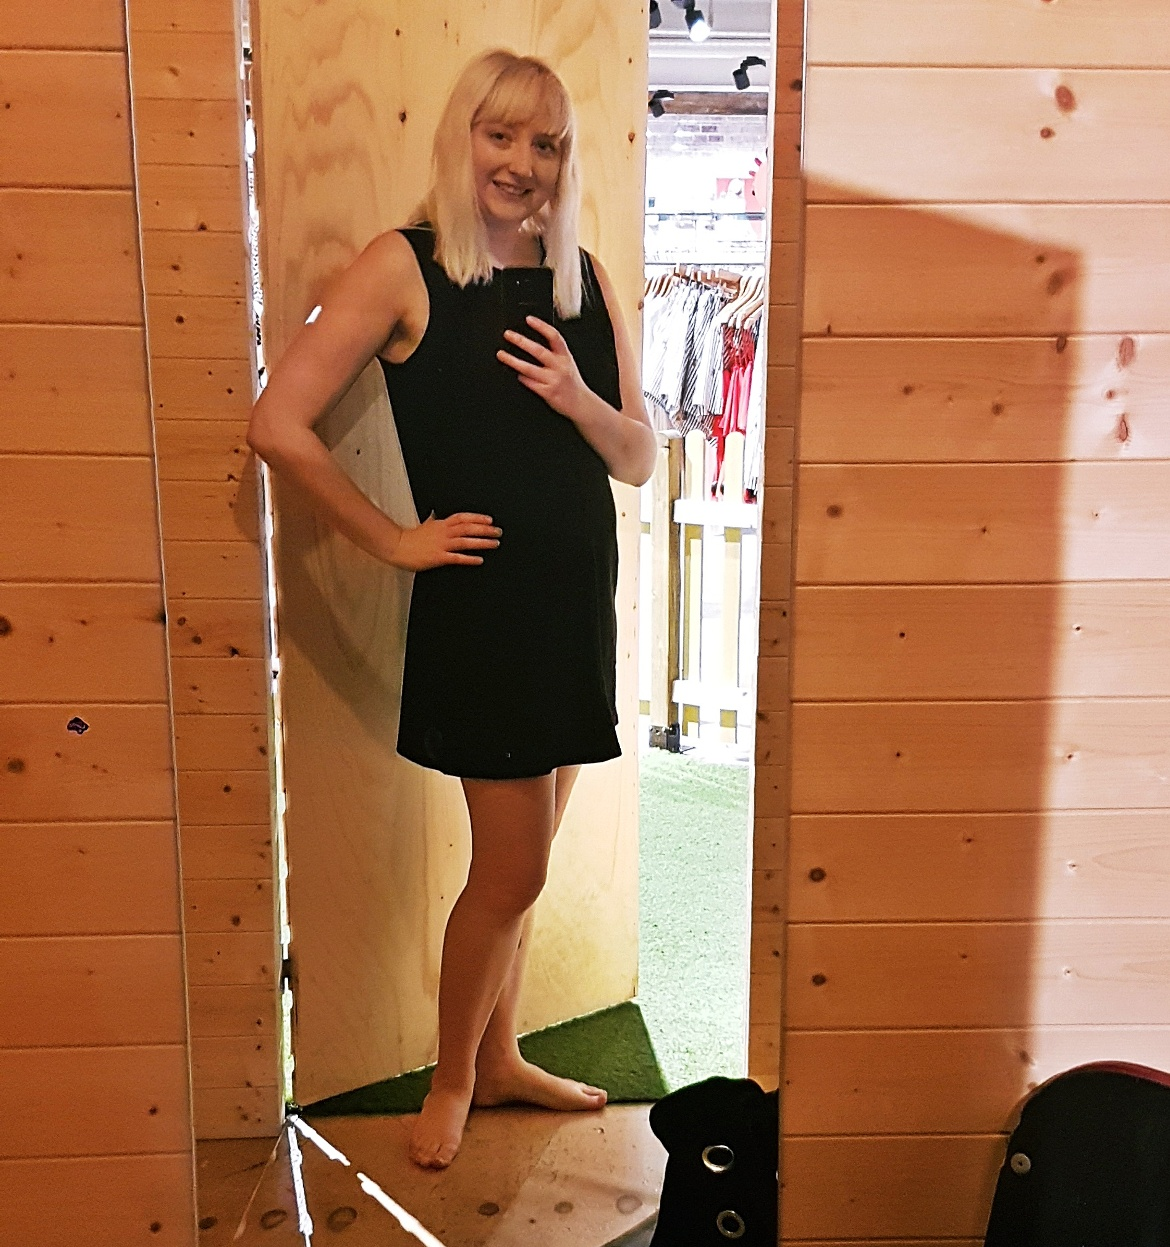 The tasselled black dress that I bought - Tune in with Joy the Store, Leeds shop review by BeckyBecky Blogs